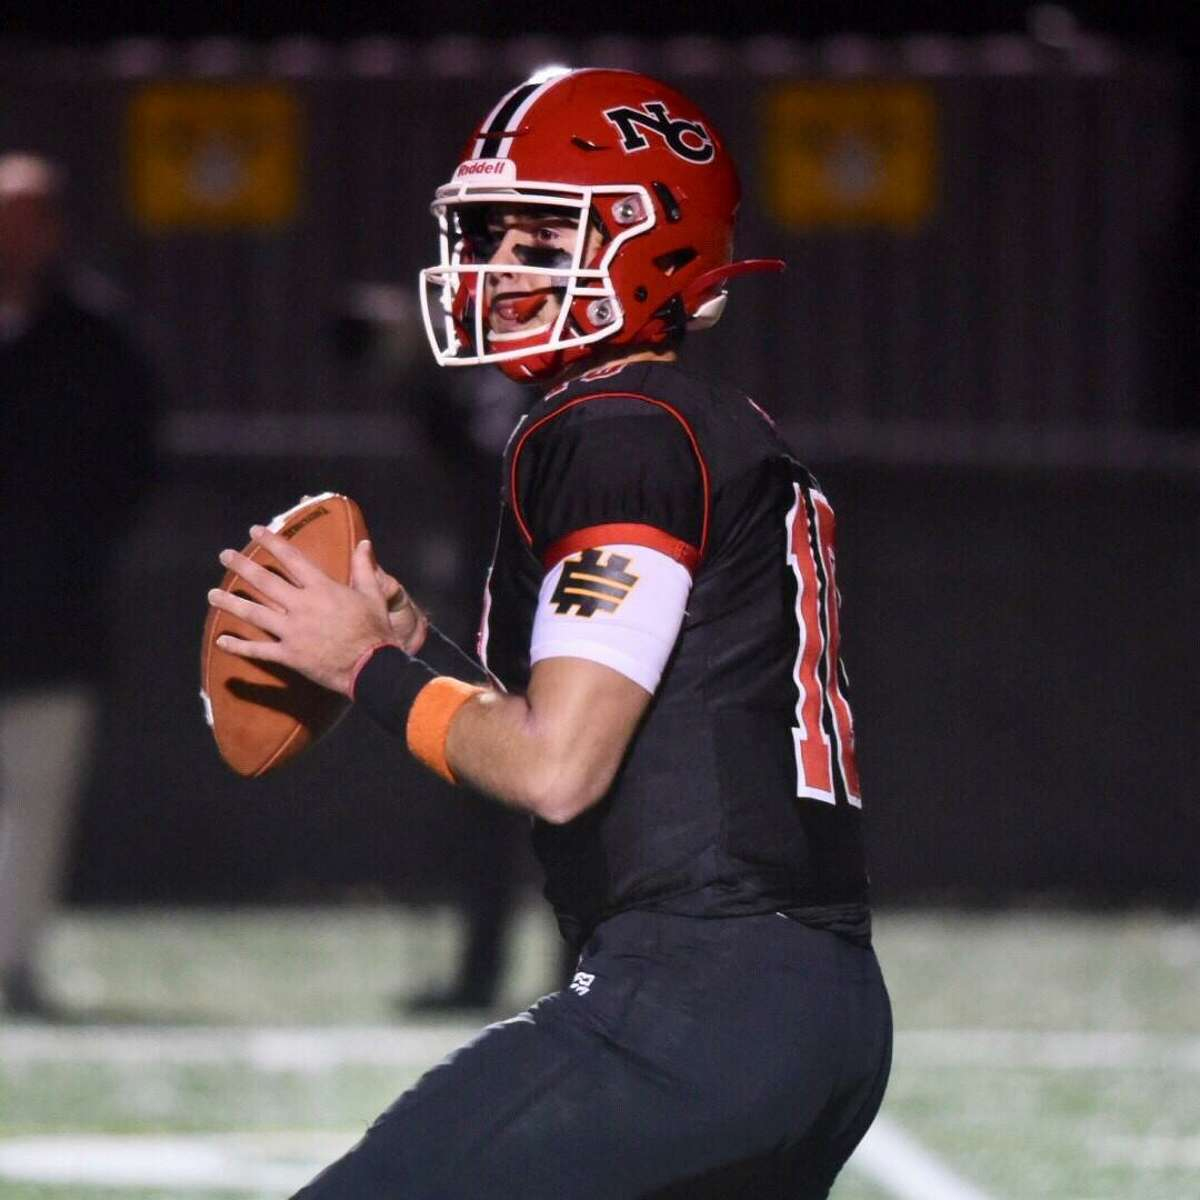 New Canaan's Drew Pyne looks downfield for a receiver during the Rams' football game against Wilton at Dunning Field on Friday, Nov. 15, 2019.